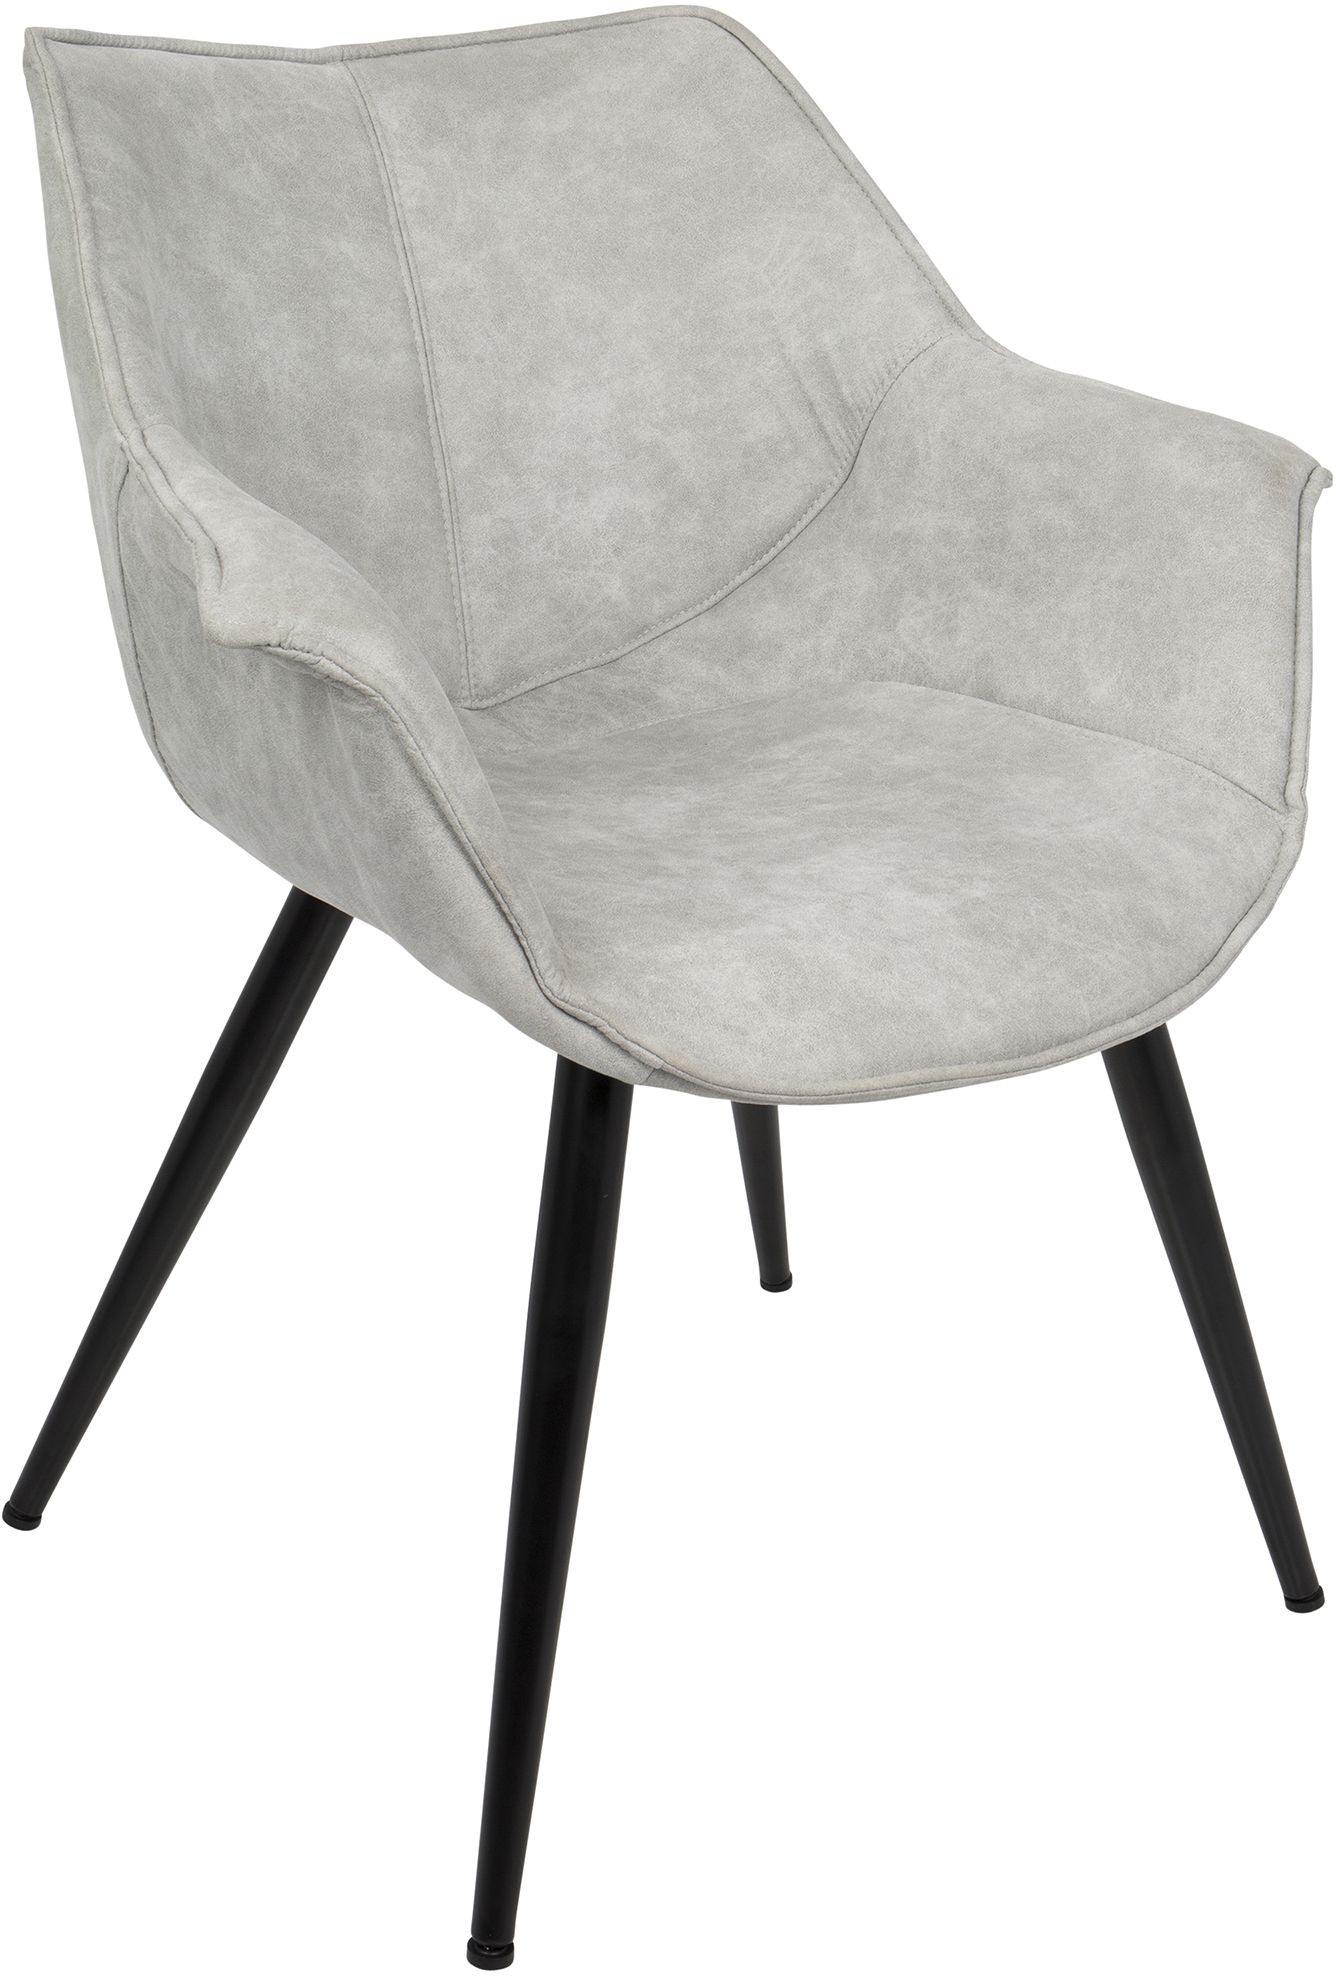 Light Gray Accent Chairs Wrangler Light Gray Accent Chair Set Of 2 From Lumisource